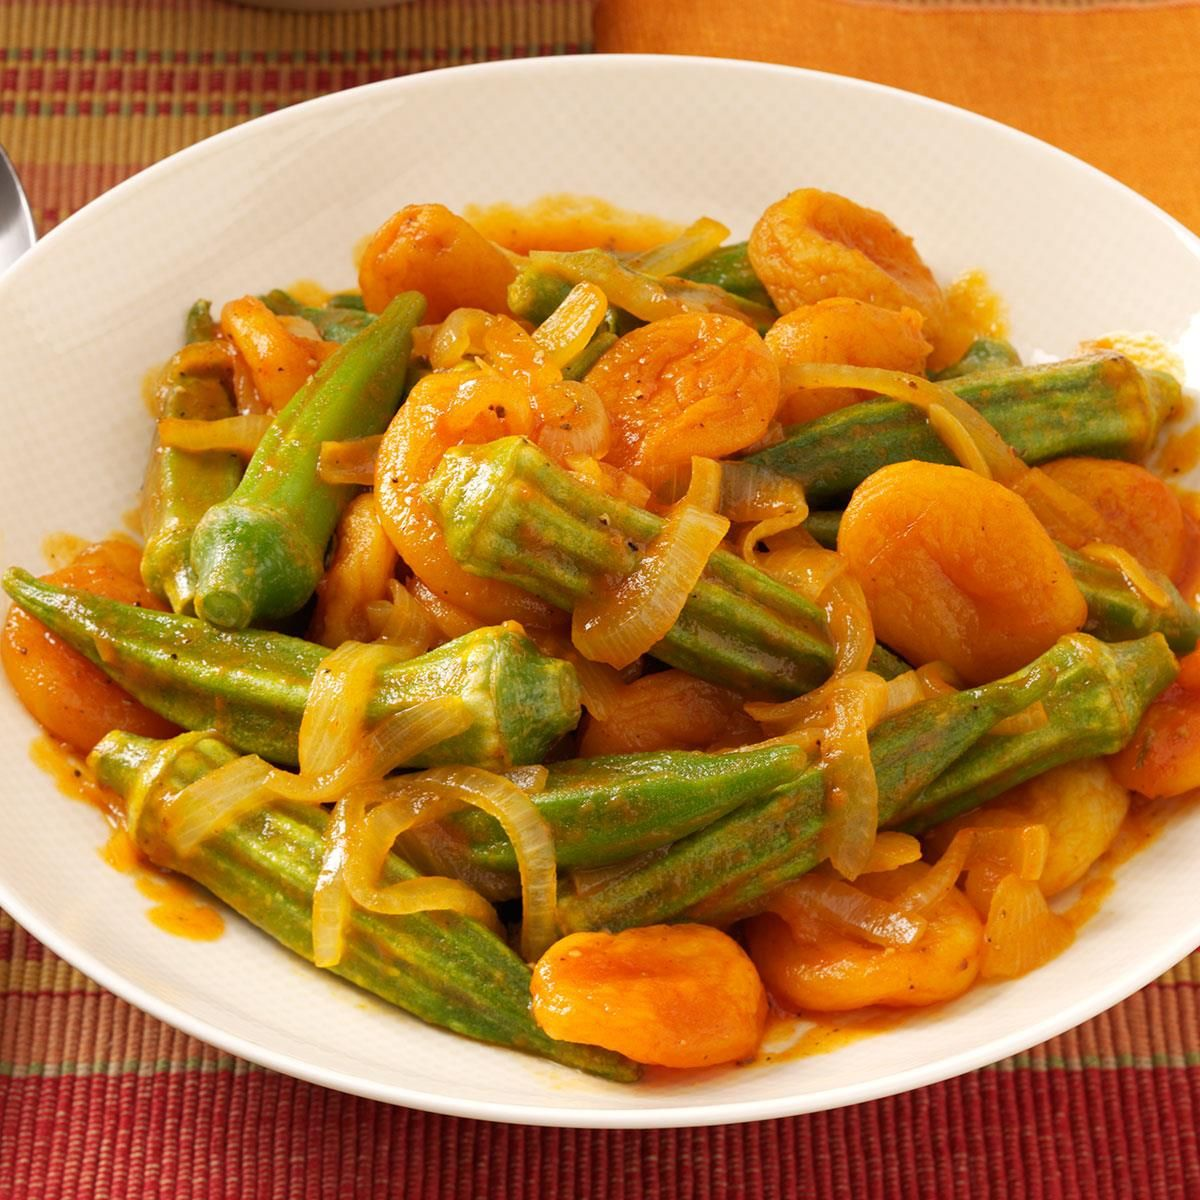 Turkish Home Recipes from a New York Home: Okra with ... |Turkish Food With Okra